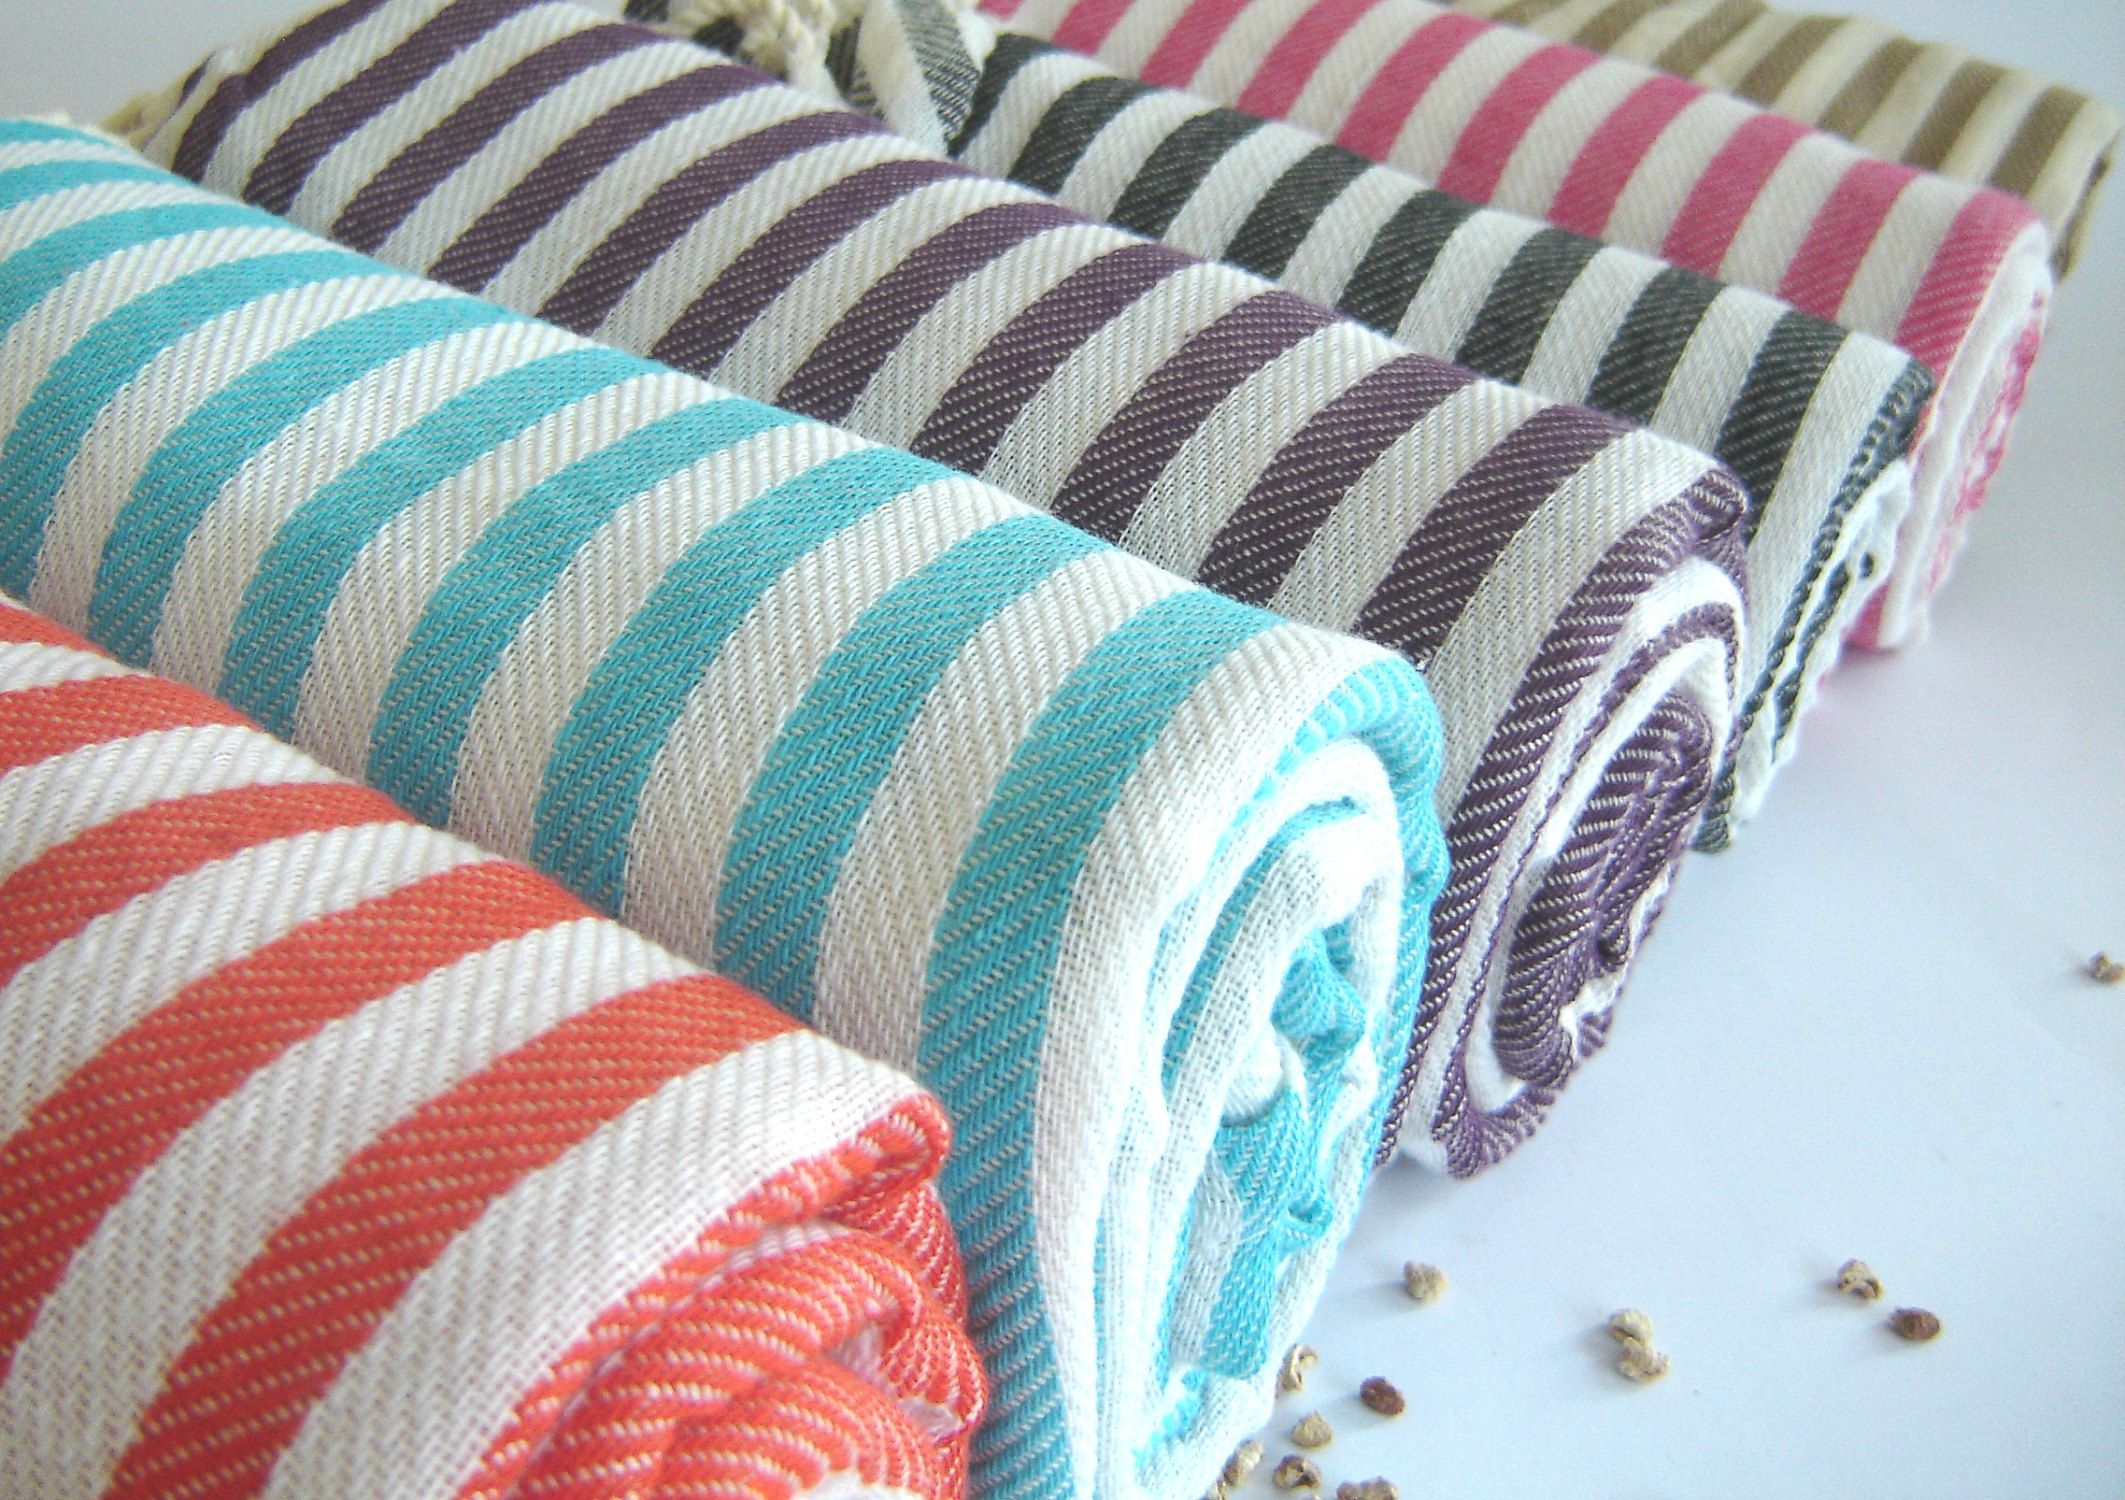 Handwoven, eco-friendly and organic Turkish bath and beach towels, beach dresses, sofa covers, bathrobes and more... All are made by the Anatolian